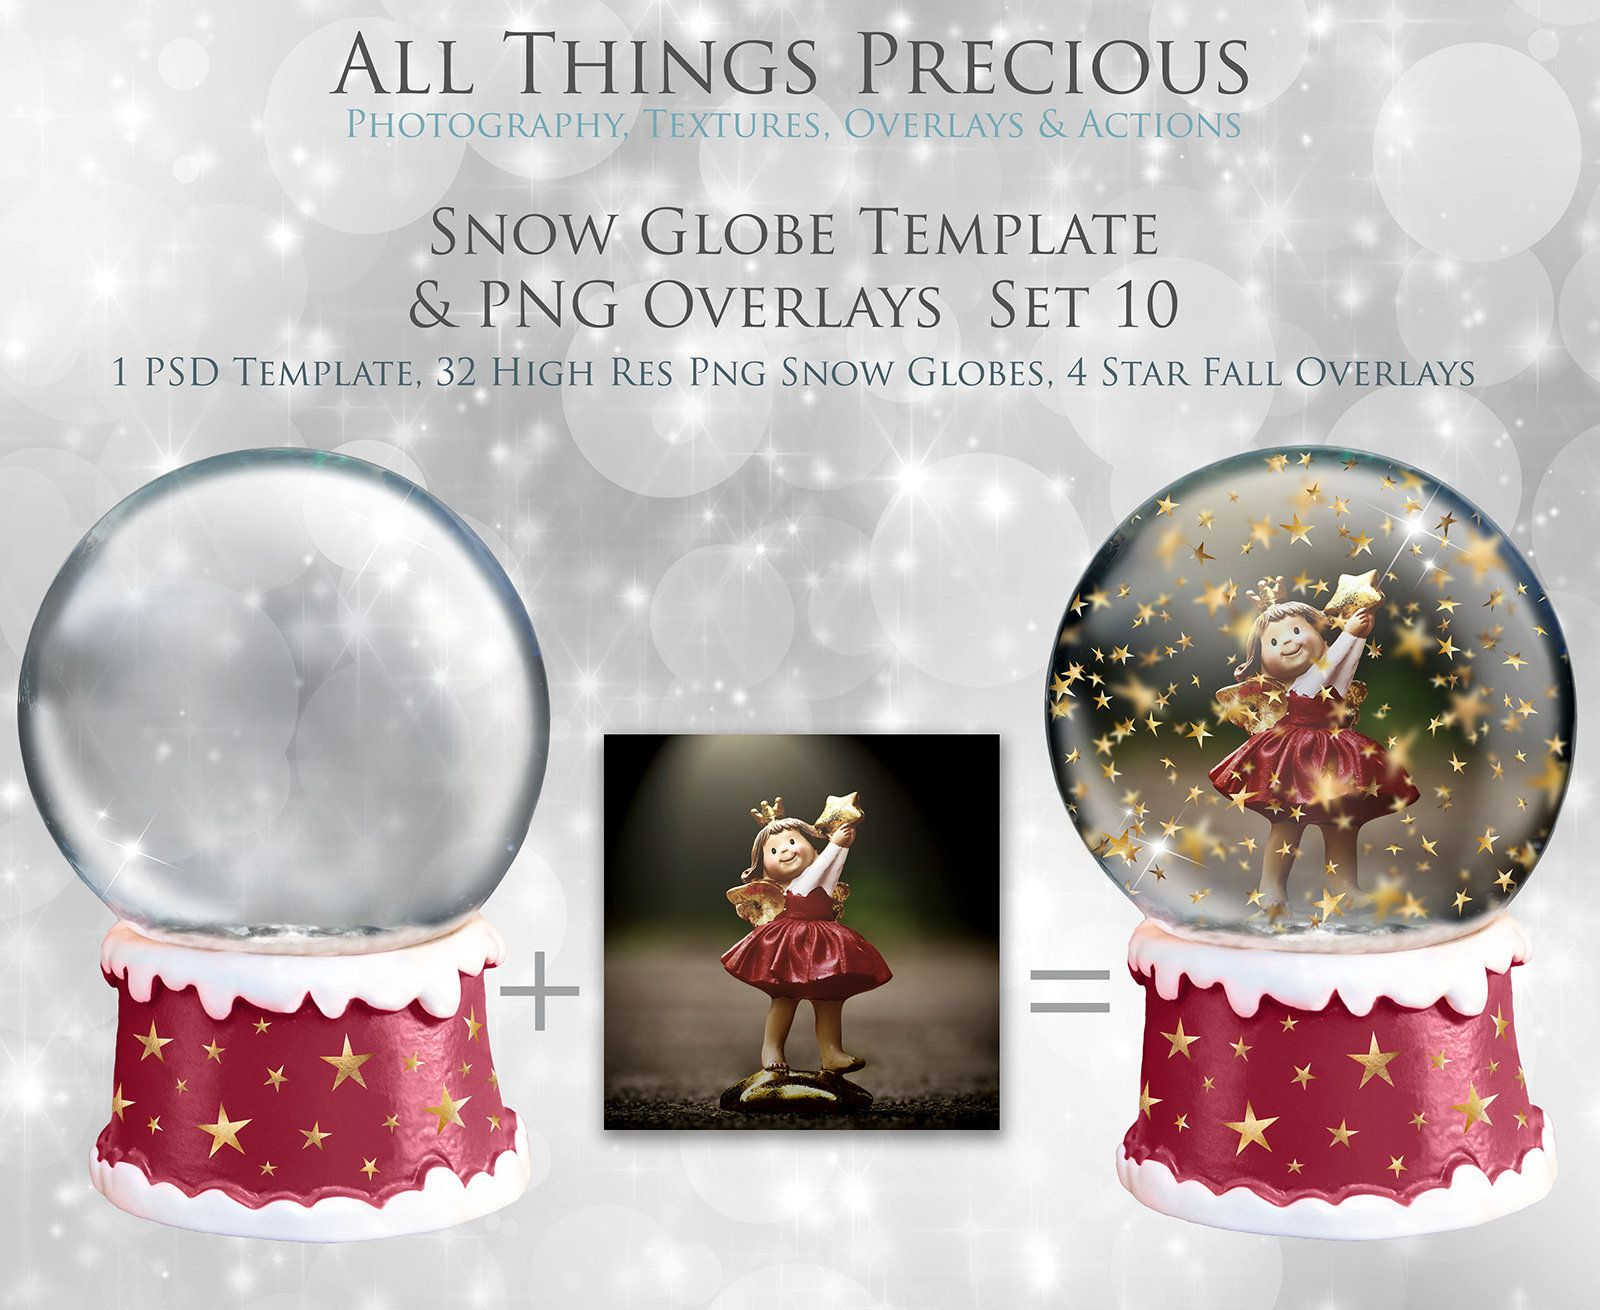 32 Snow Globe Png Overlays And Psd Template No 10 Digital Snow Globe Photoshop Overlays High Res Snow Clipart Glass Dome Christmas In 2020 Photoshop Overlays Snow Globes Overlays